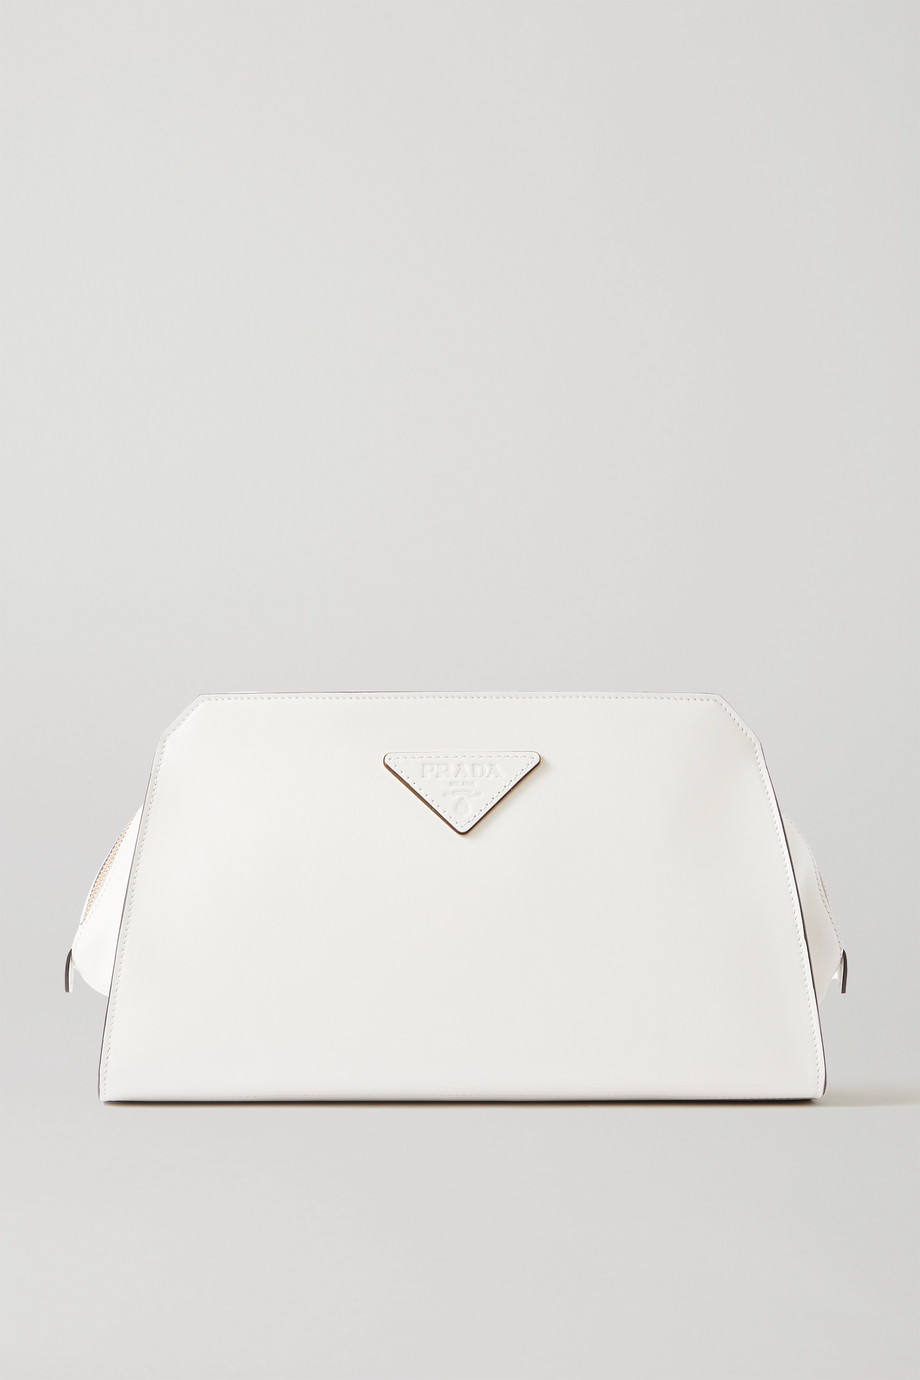 Prada Pelletteria medium appliquéd leather clutch